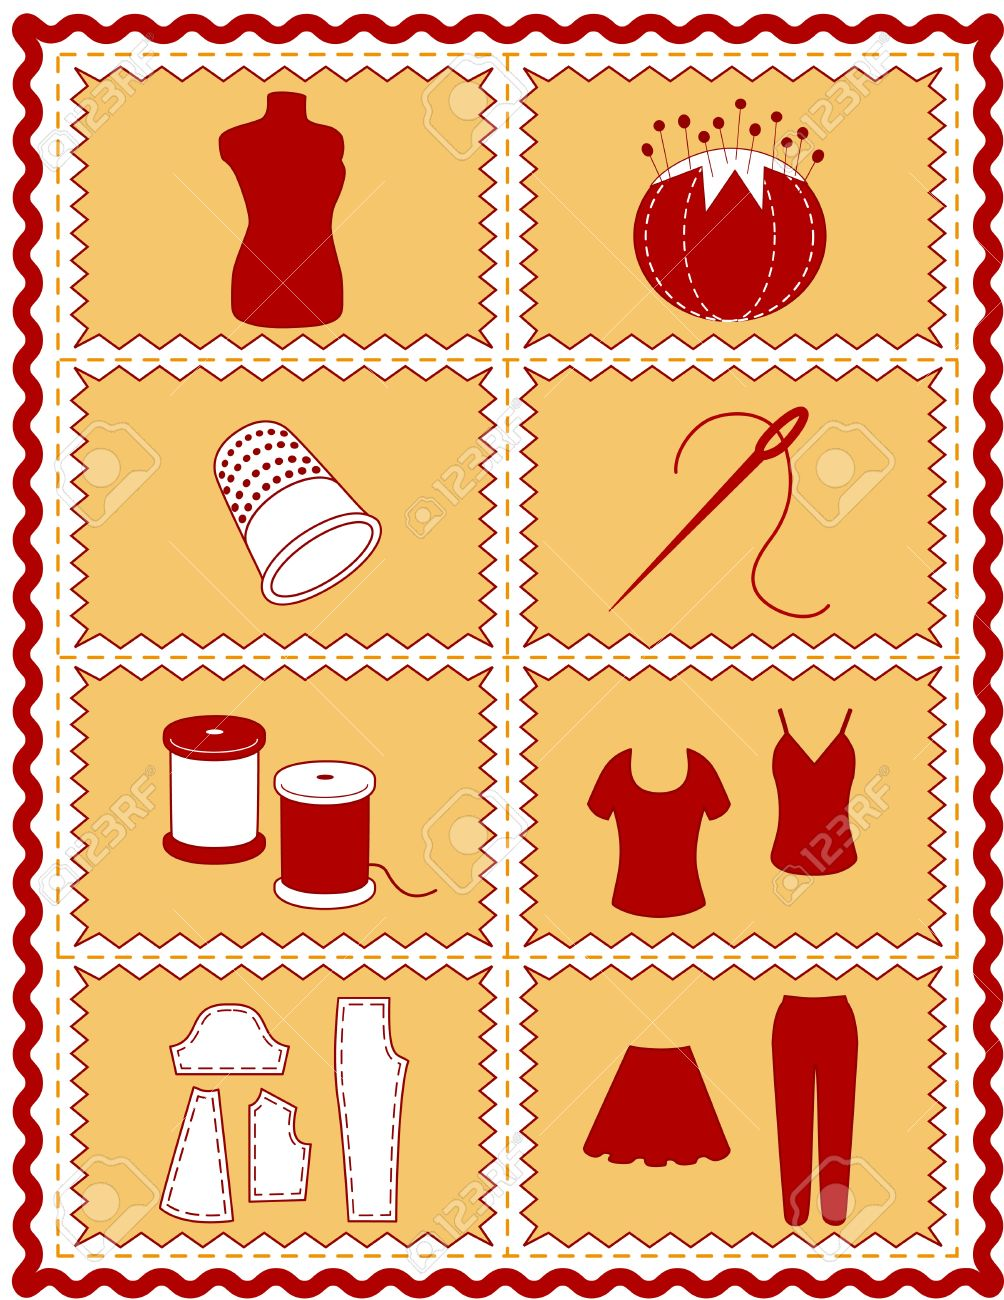 Sewing And Tailoring Icons. Tools And Supplies For Sewing ... : supplies for quilting - Adamdwight.com